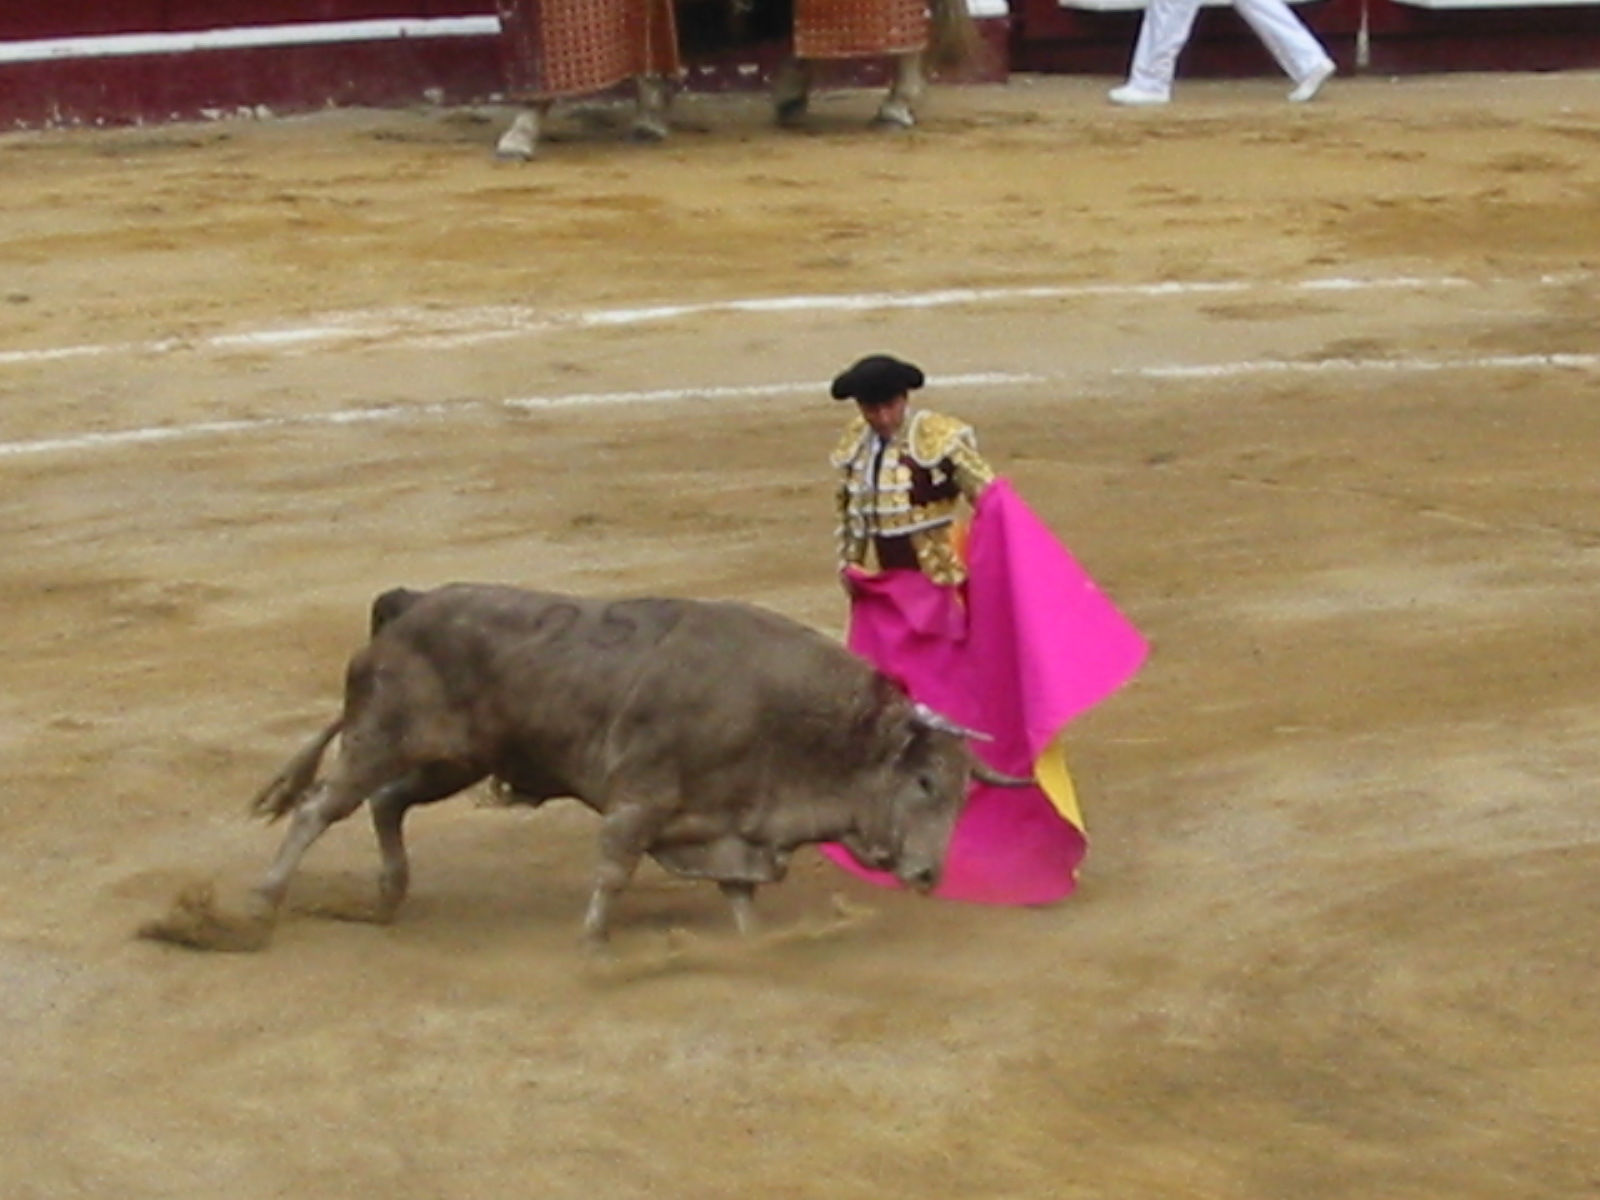 history of bull The history of bull riding started first back in the 1850's texas men rode bucking horses then after awhile they got tard of riding only bucking horses and wanted to ride something more rank and more fun animals so they dedcided to jump on bulls.